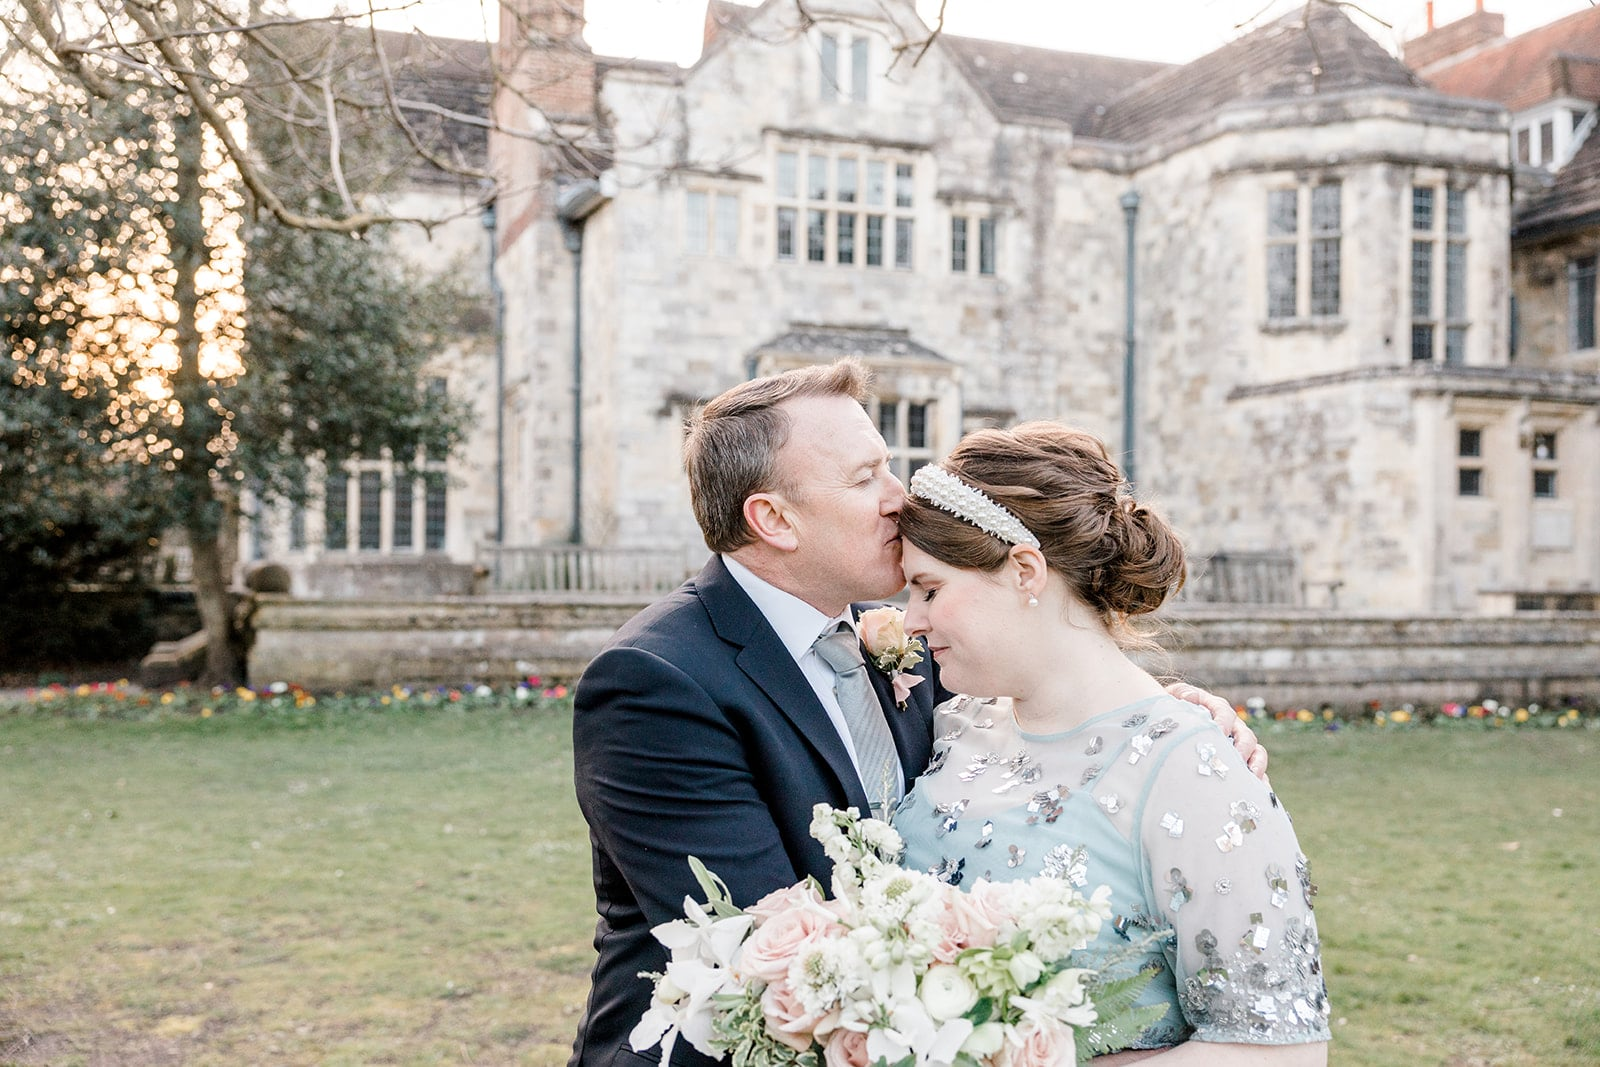 Wedding Photography at Southover Grange Lewes Register Office in East Sussex